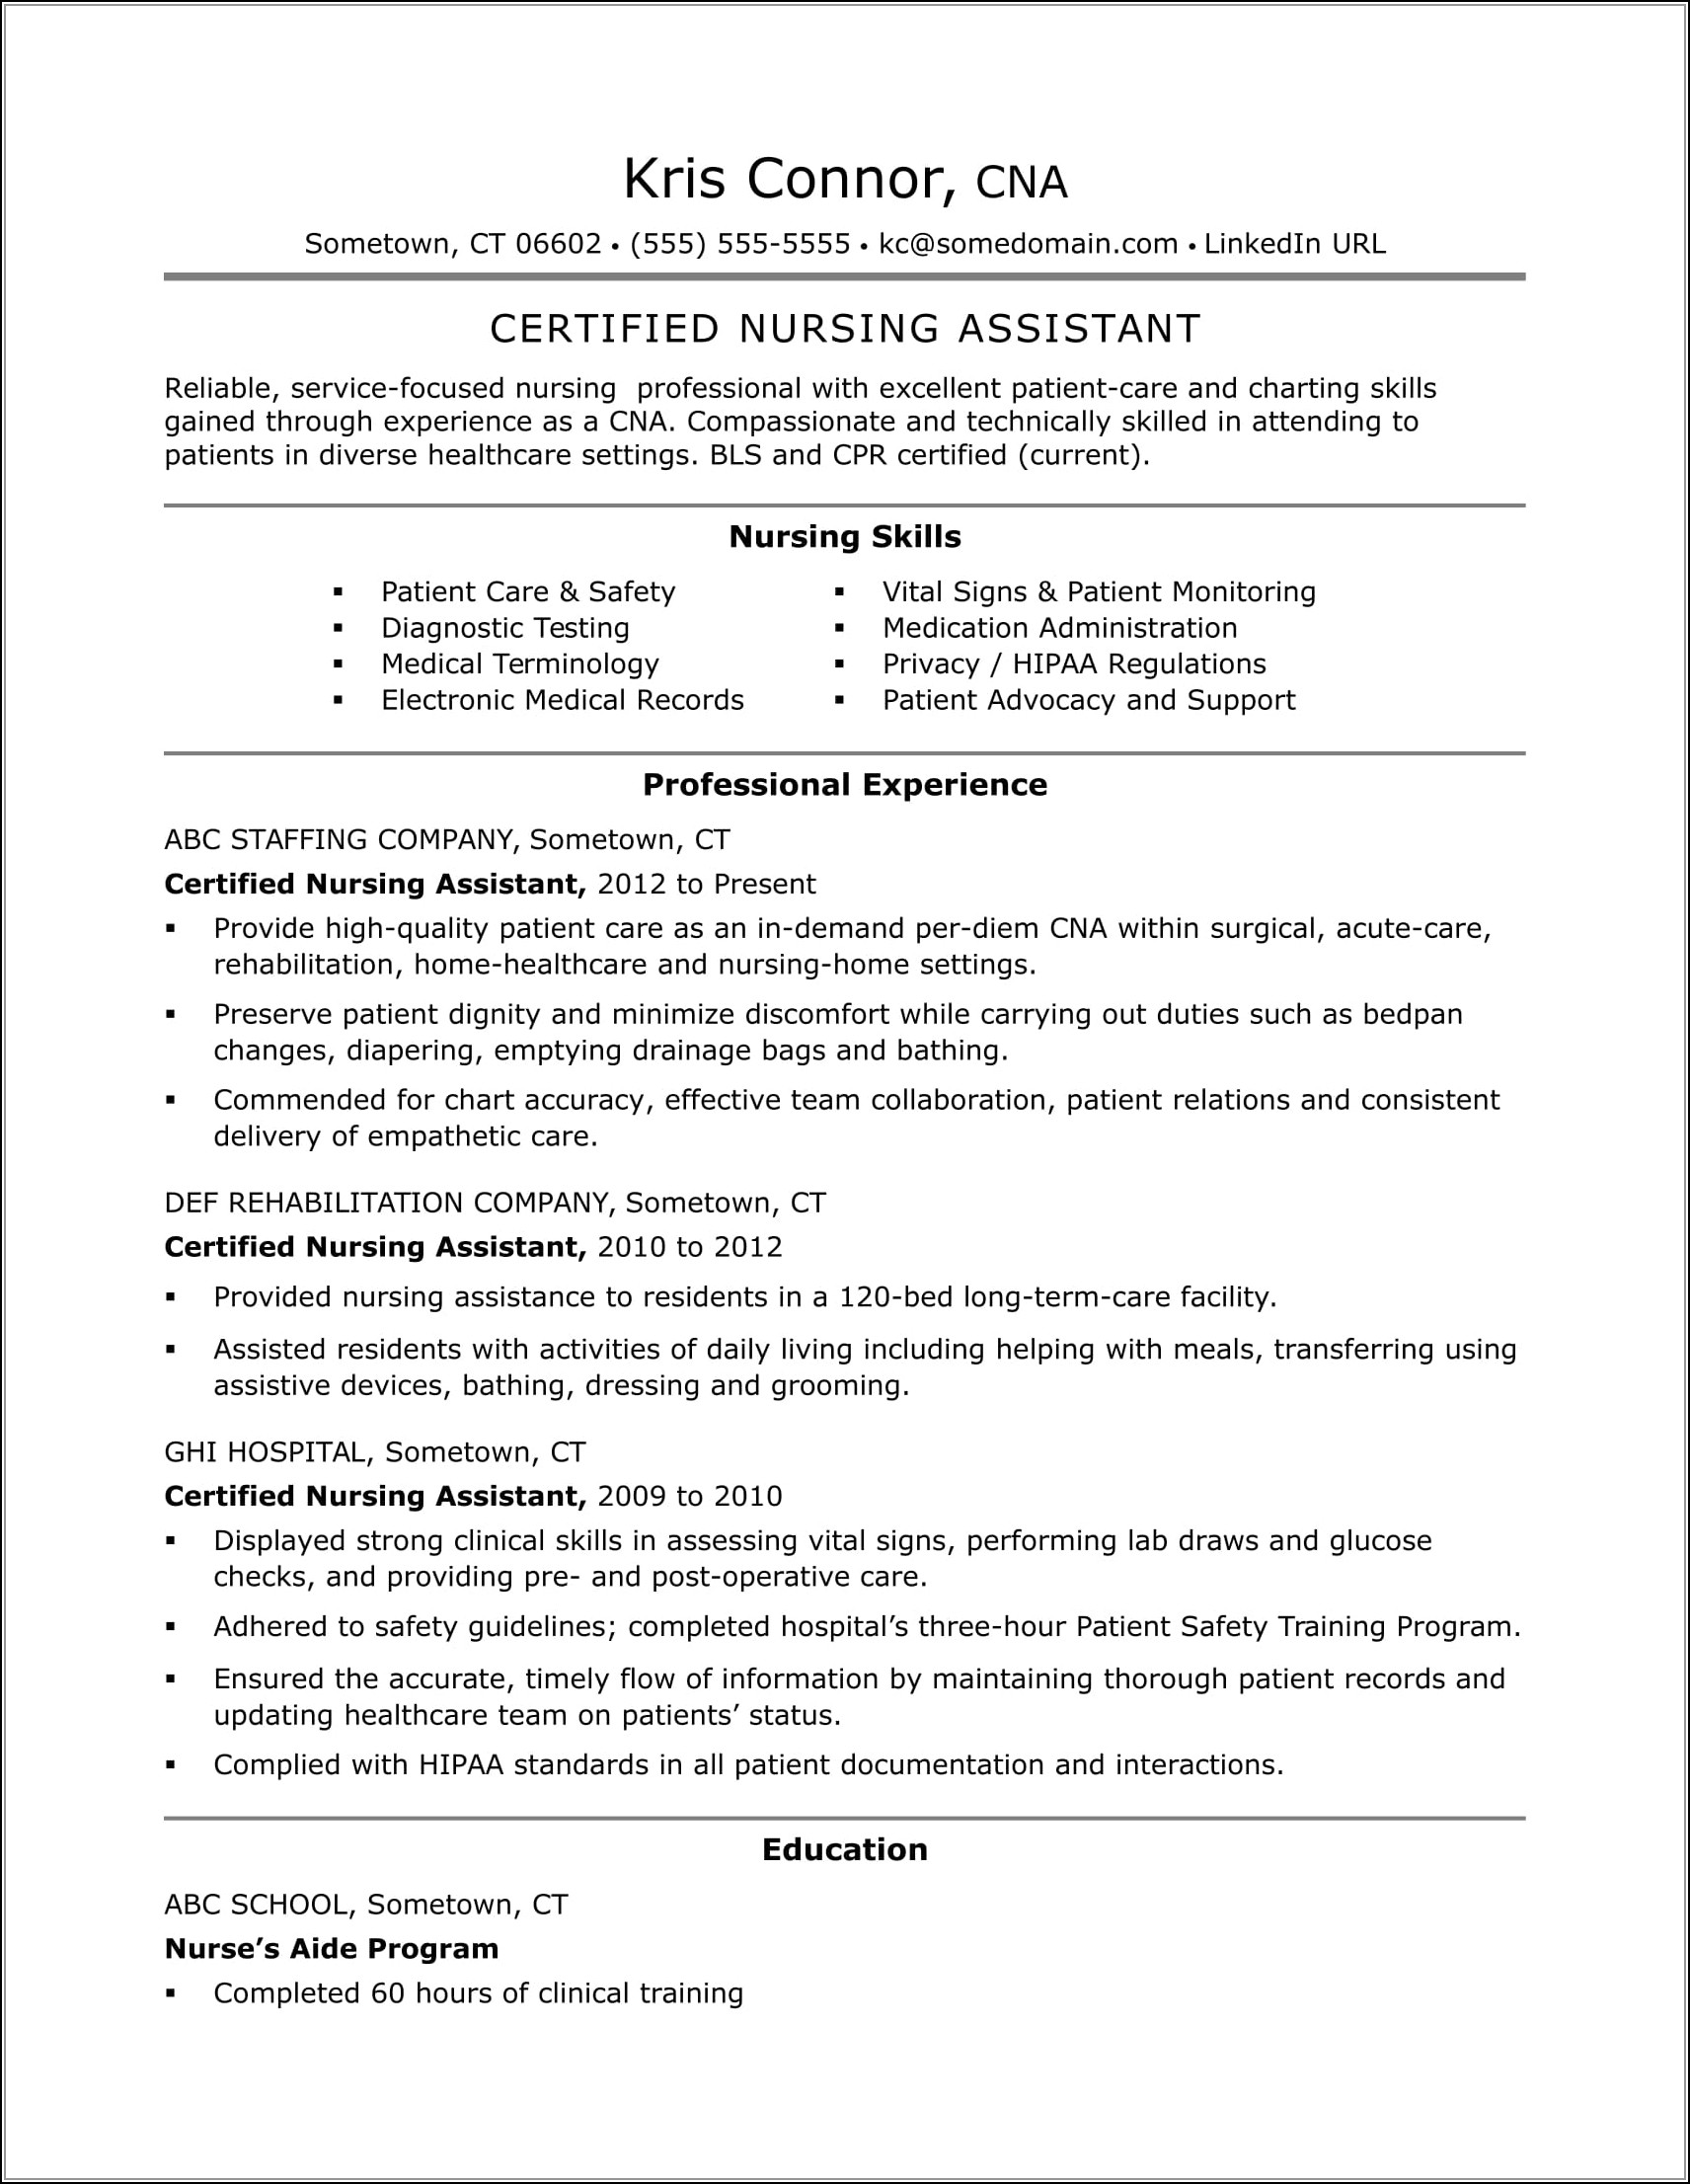 Resume For Nursing Assistant In Hospital